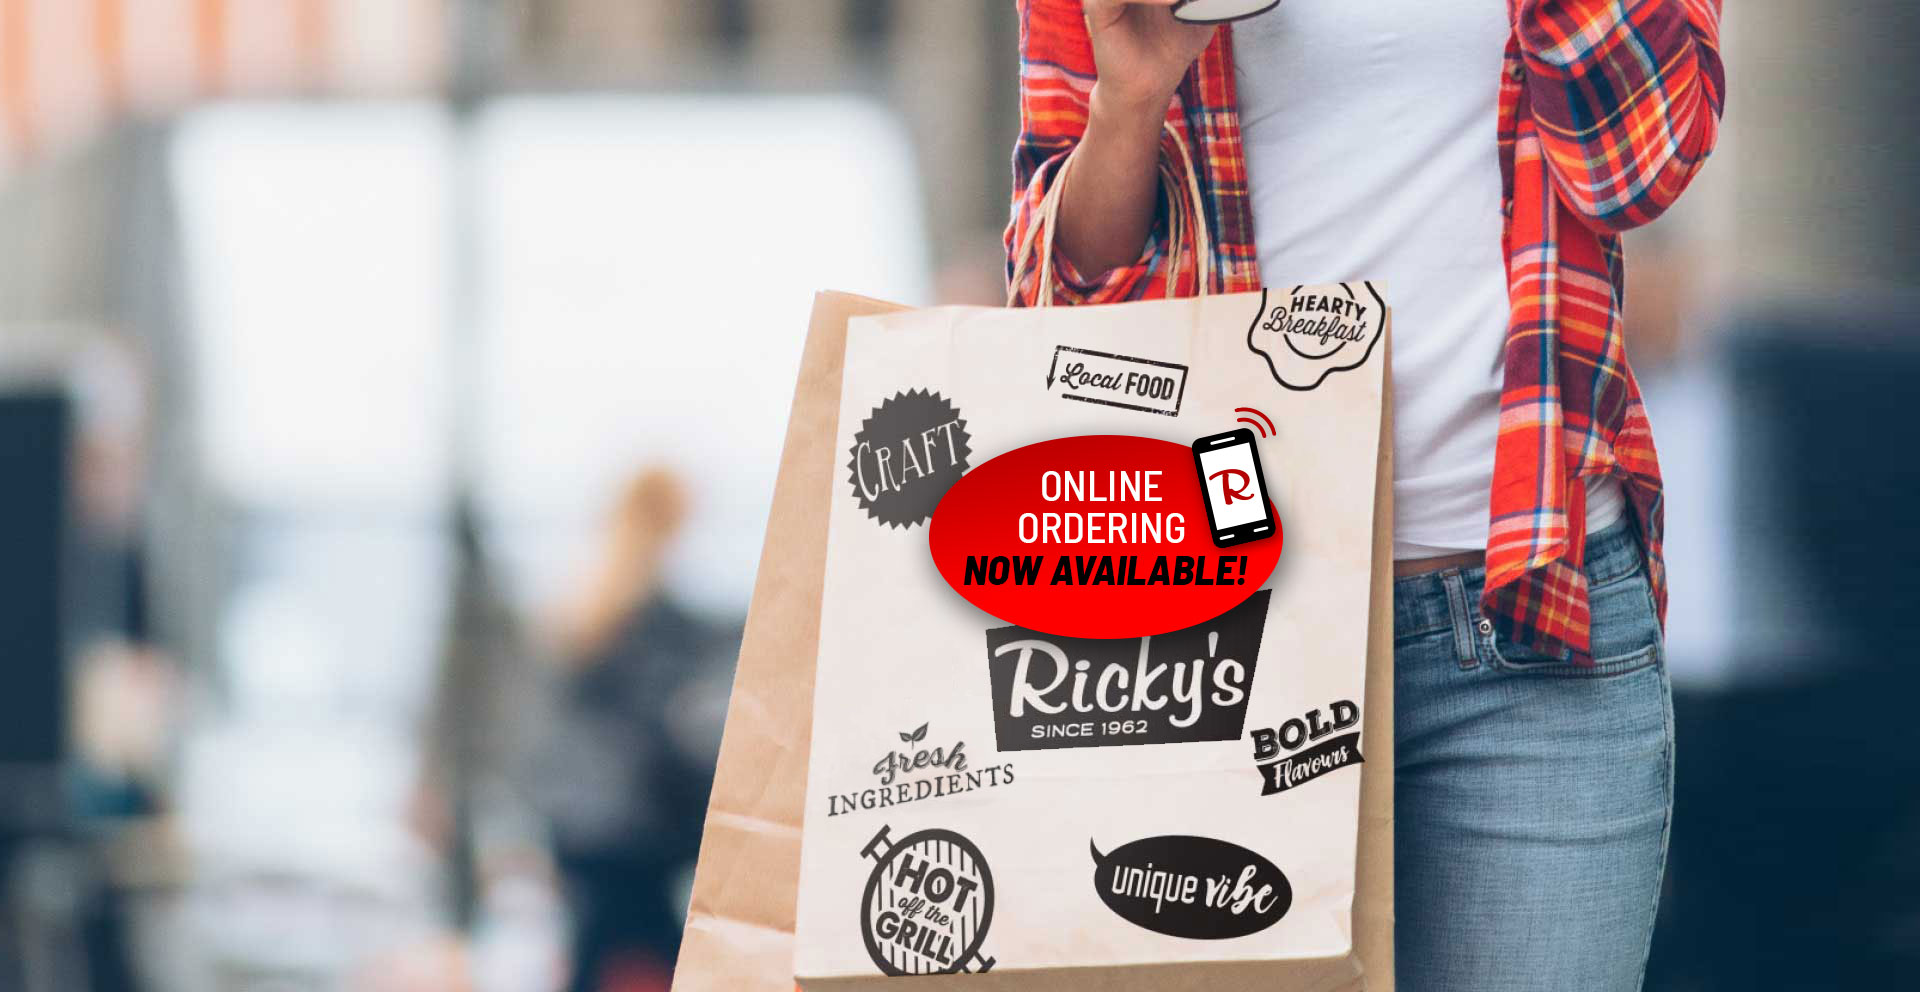 Order online or call the restaurant for quick and easy take-out. Or see if your local Ricky's delivers with Skip the Dishes.